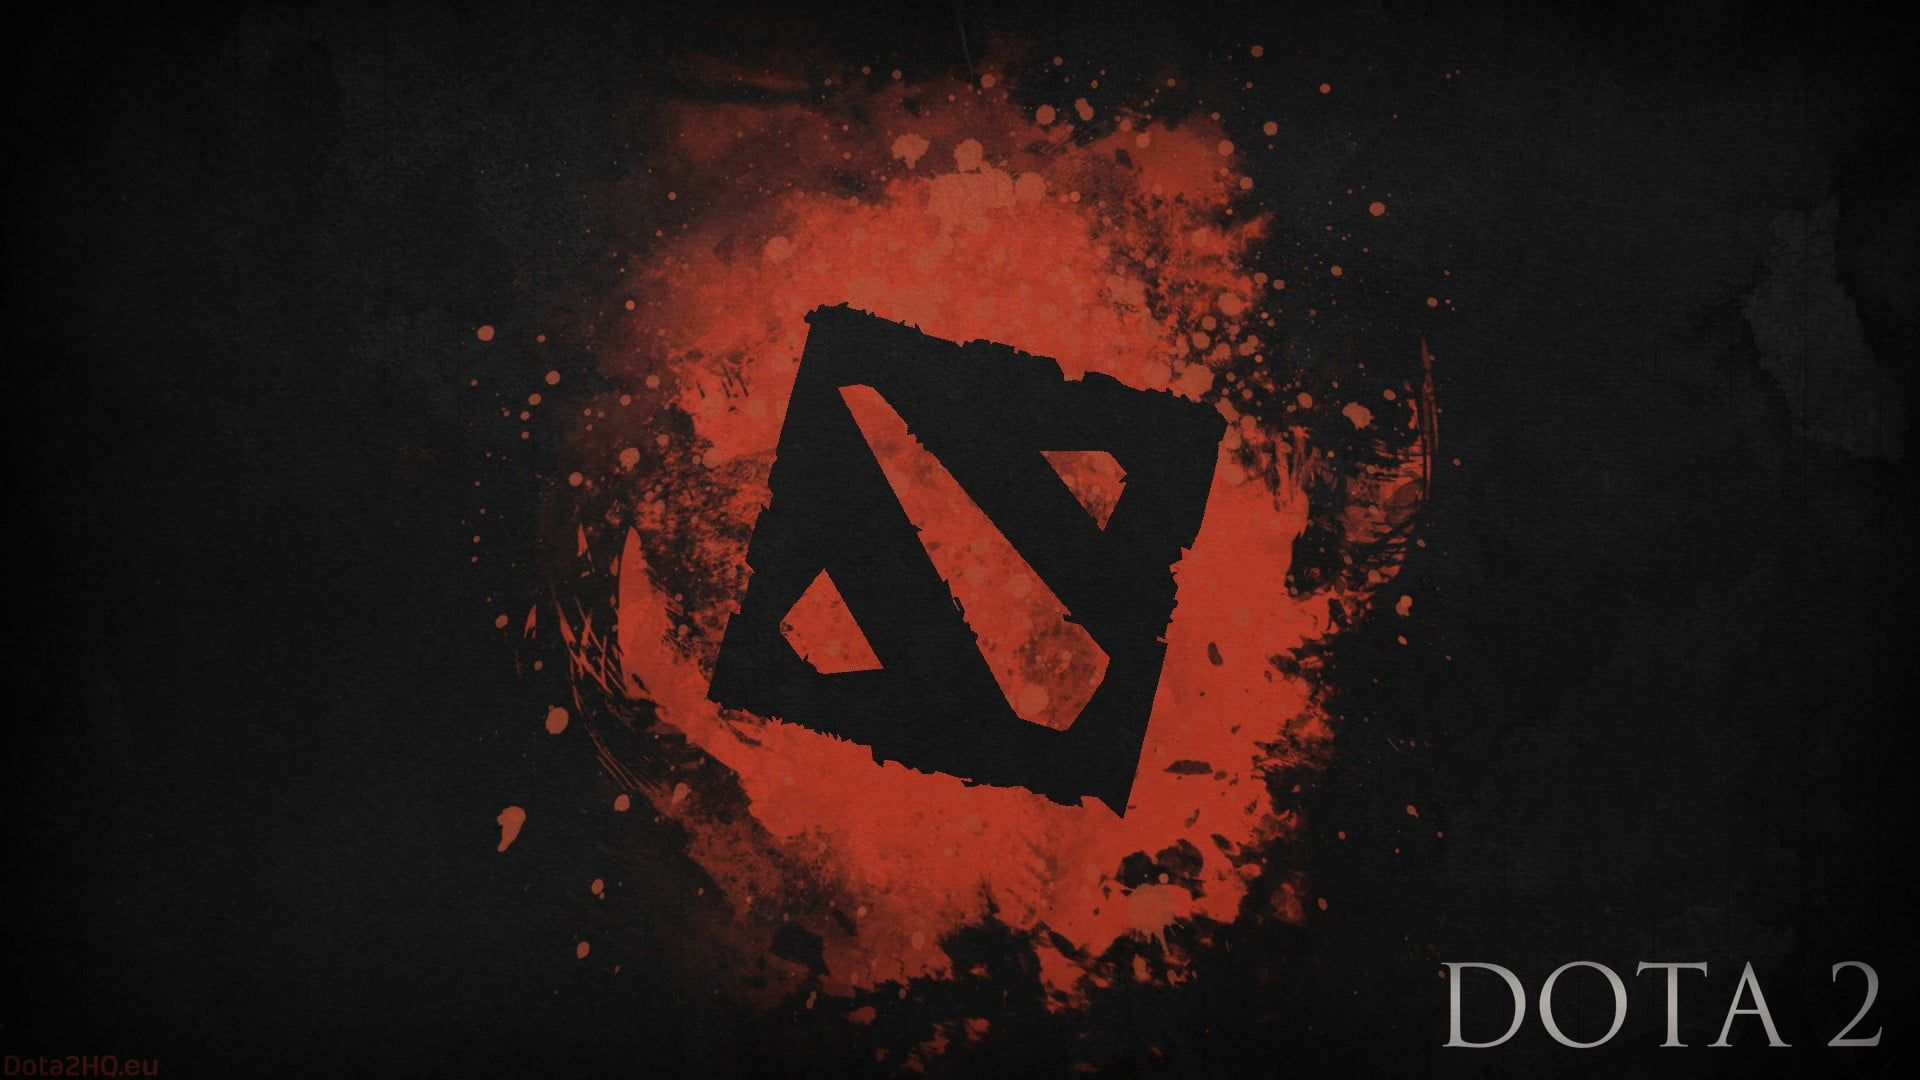 Dota 2 Logo Wallpaper Dota 2 Dota Defense Of The Ancient Valve